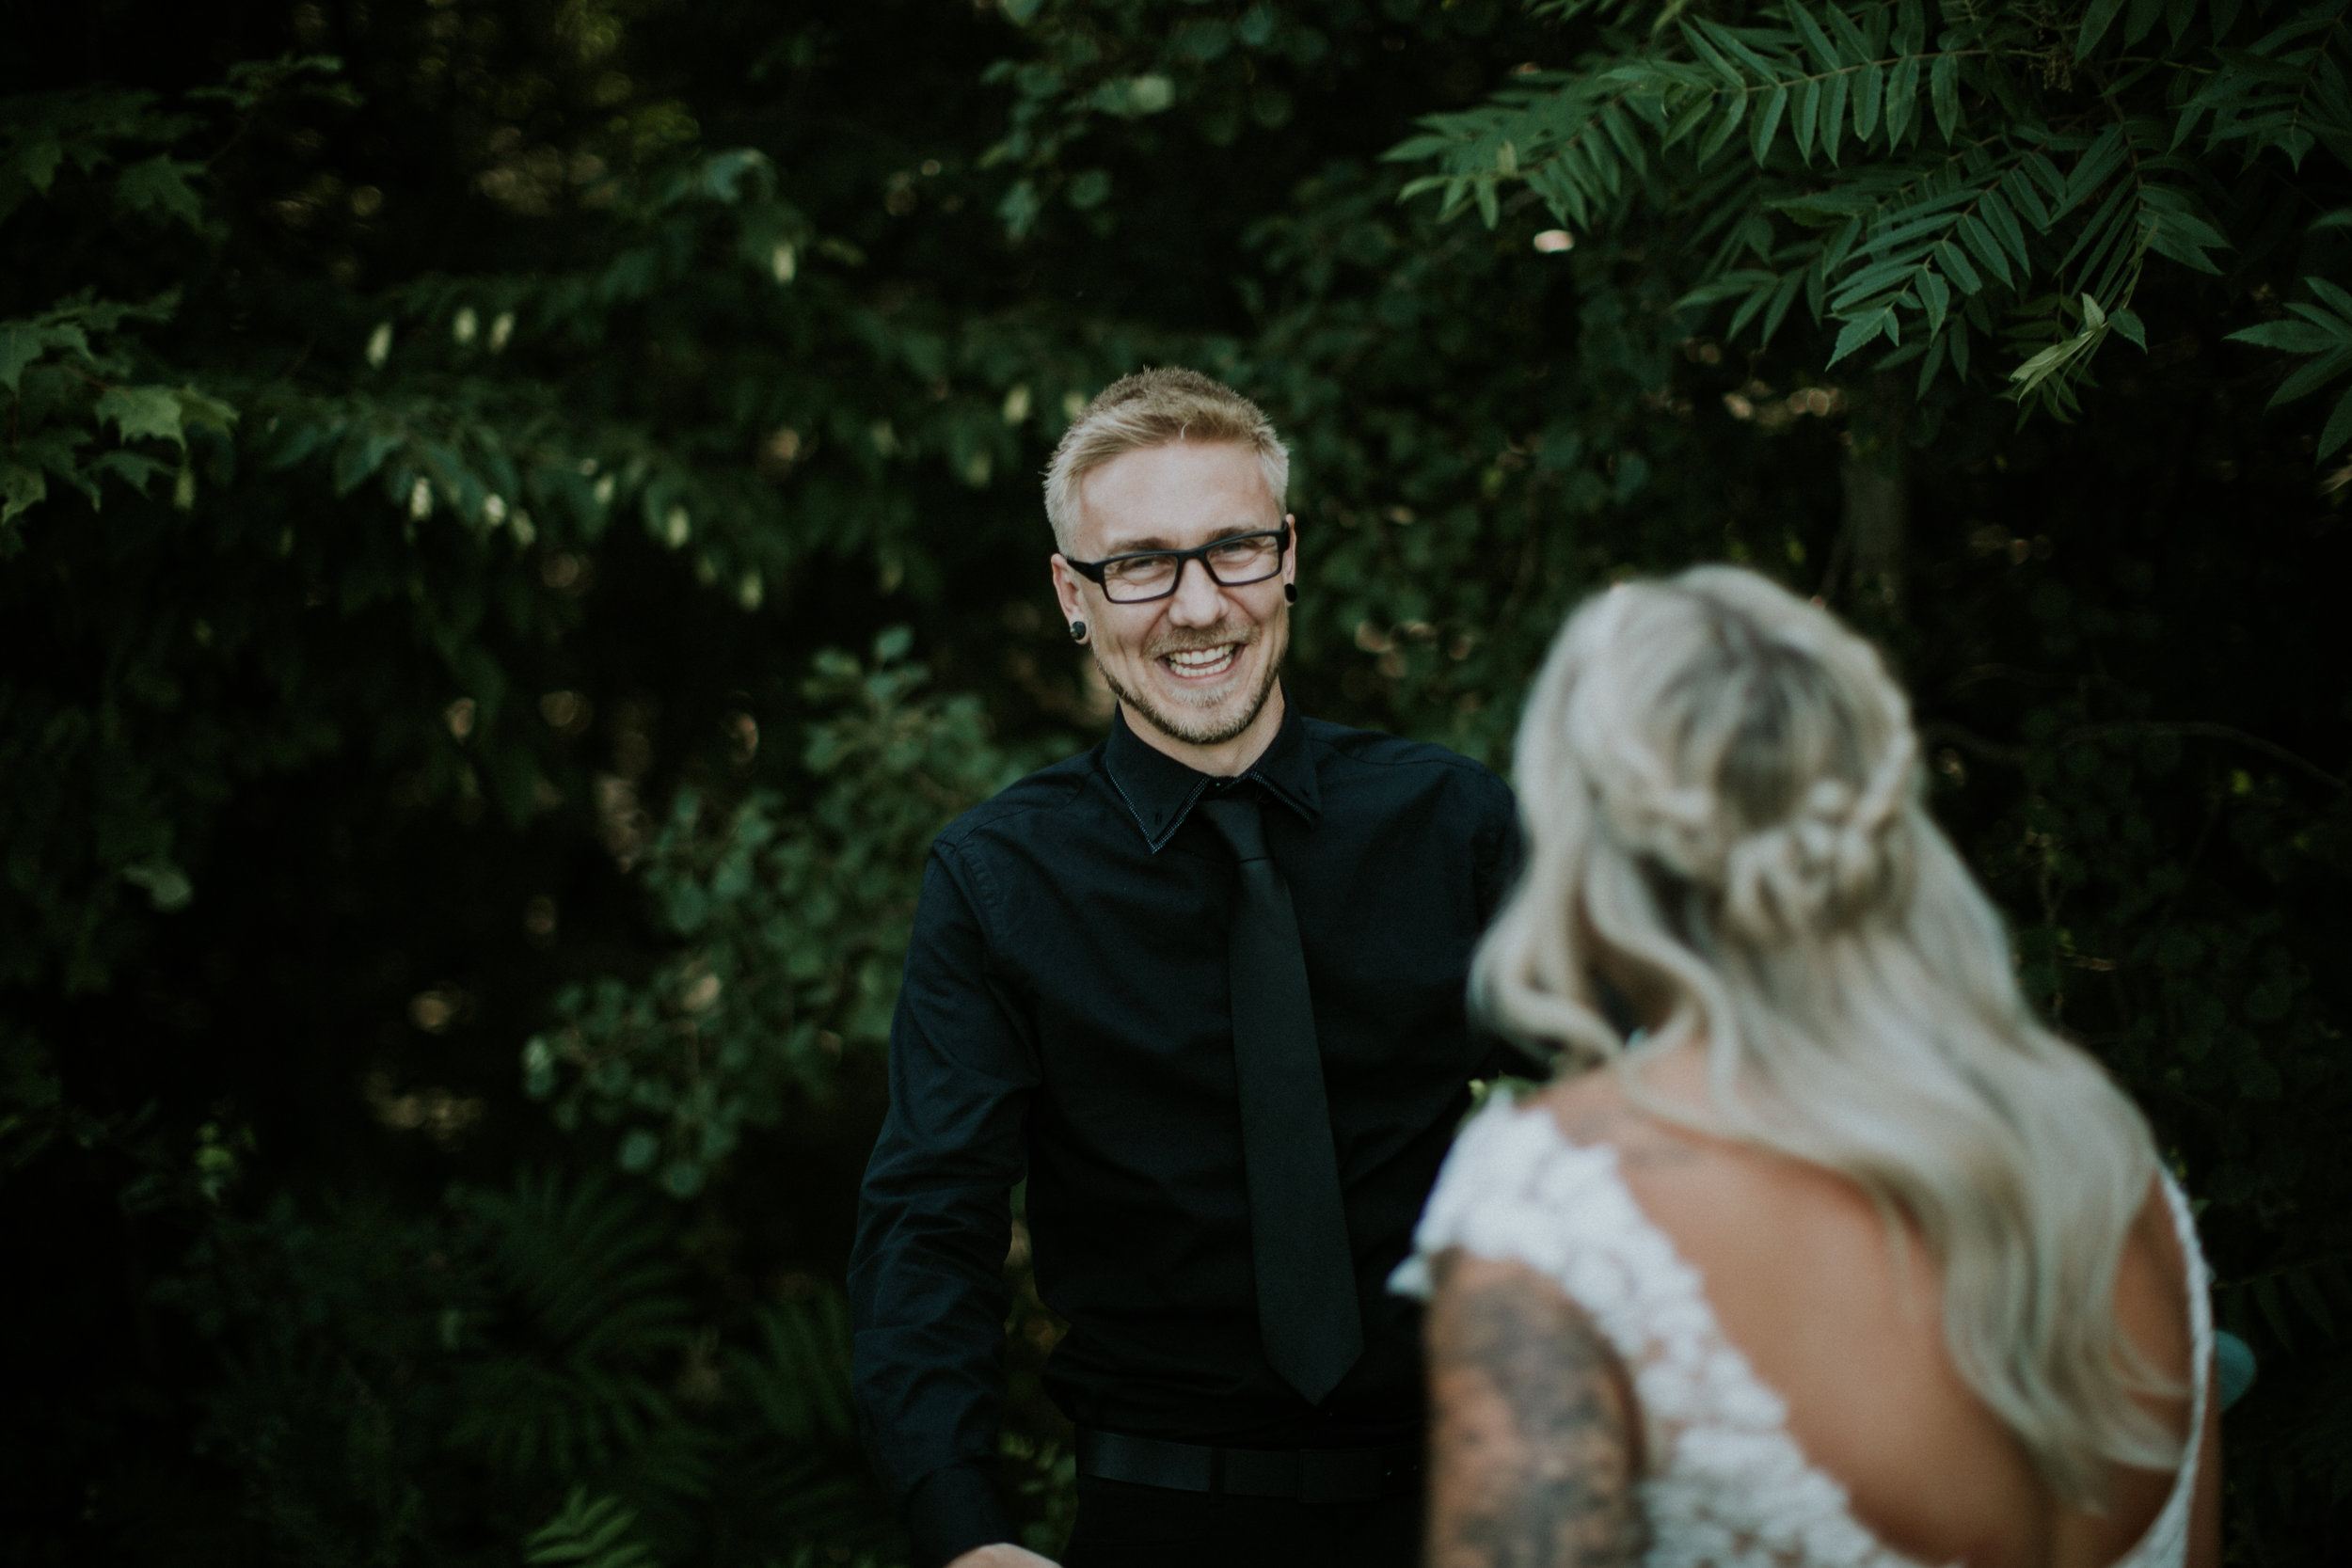 Groom seeing his bride for the first time during their first look